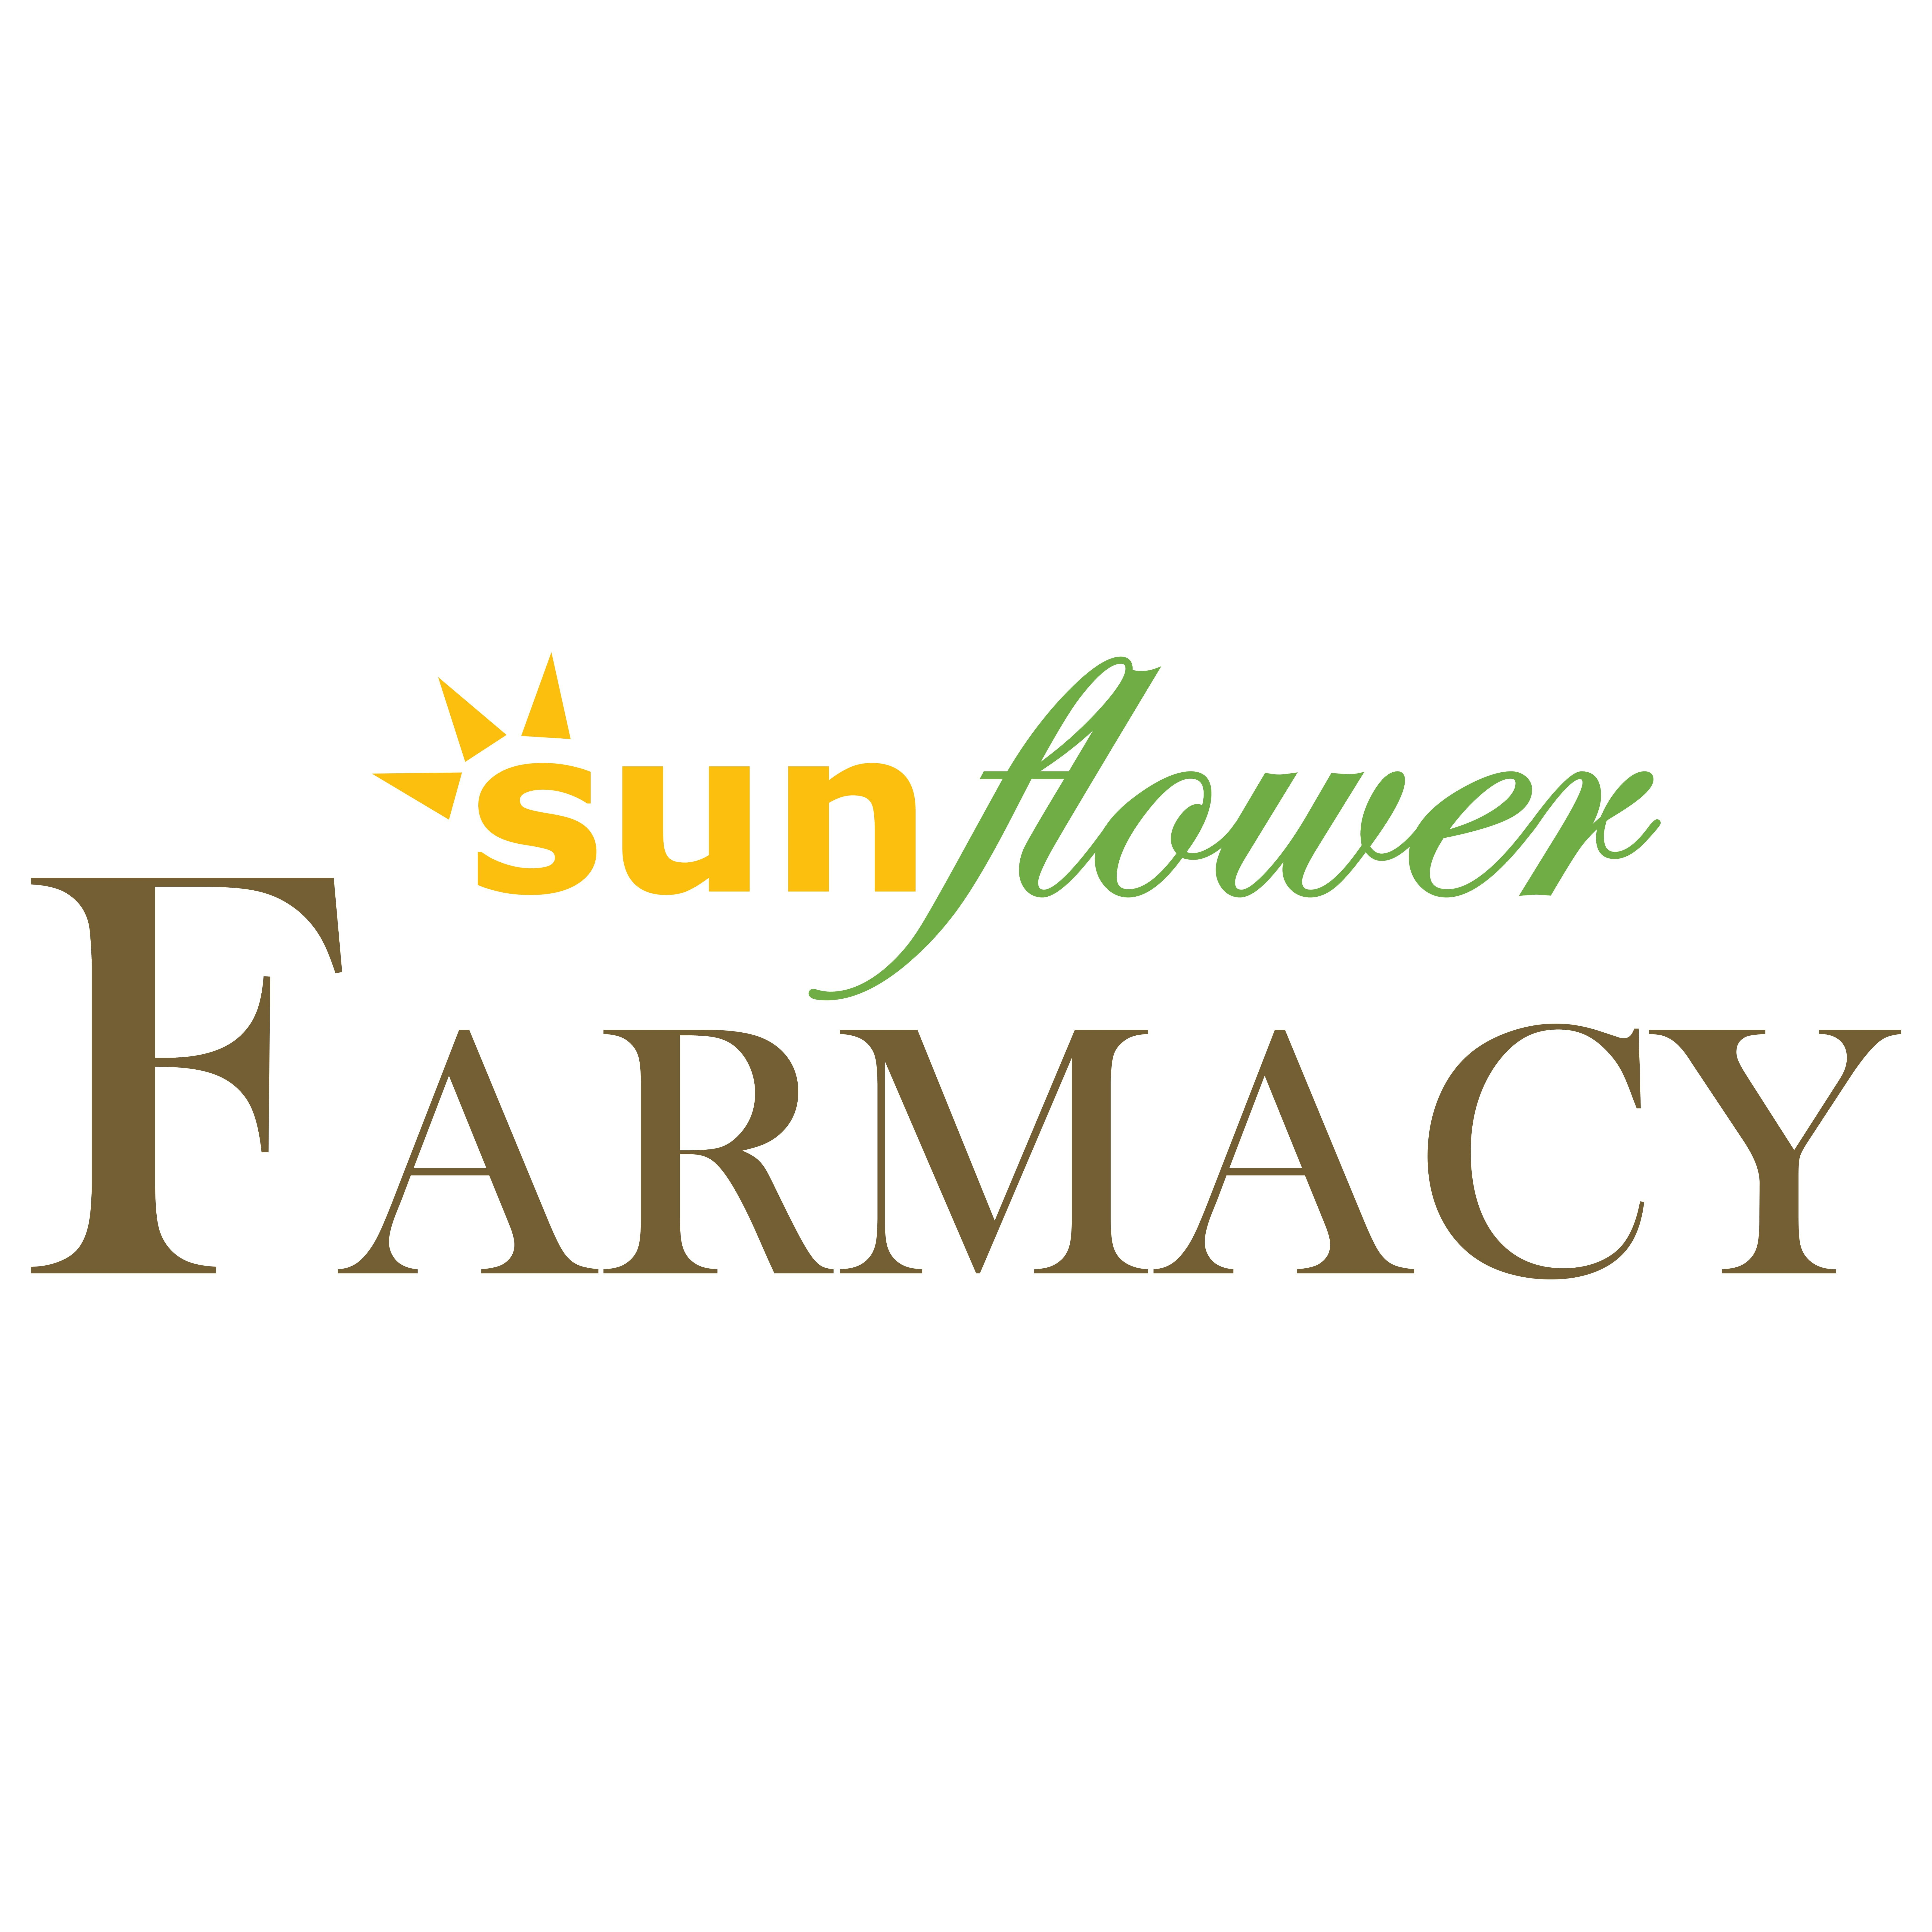 Sunflower Farmacy